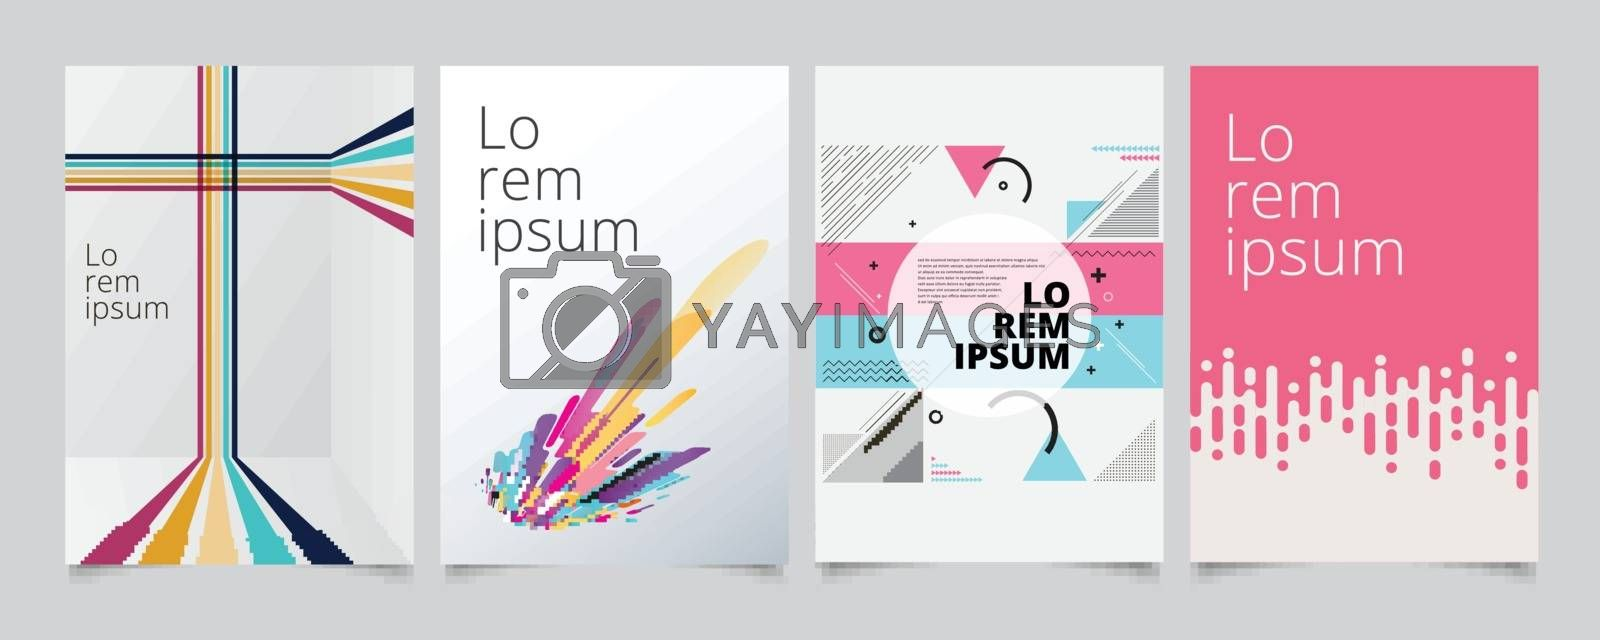 Set template geometric covers design, gradient colorful halftone with lines pattern background. Vector illustration